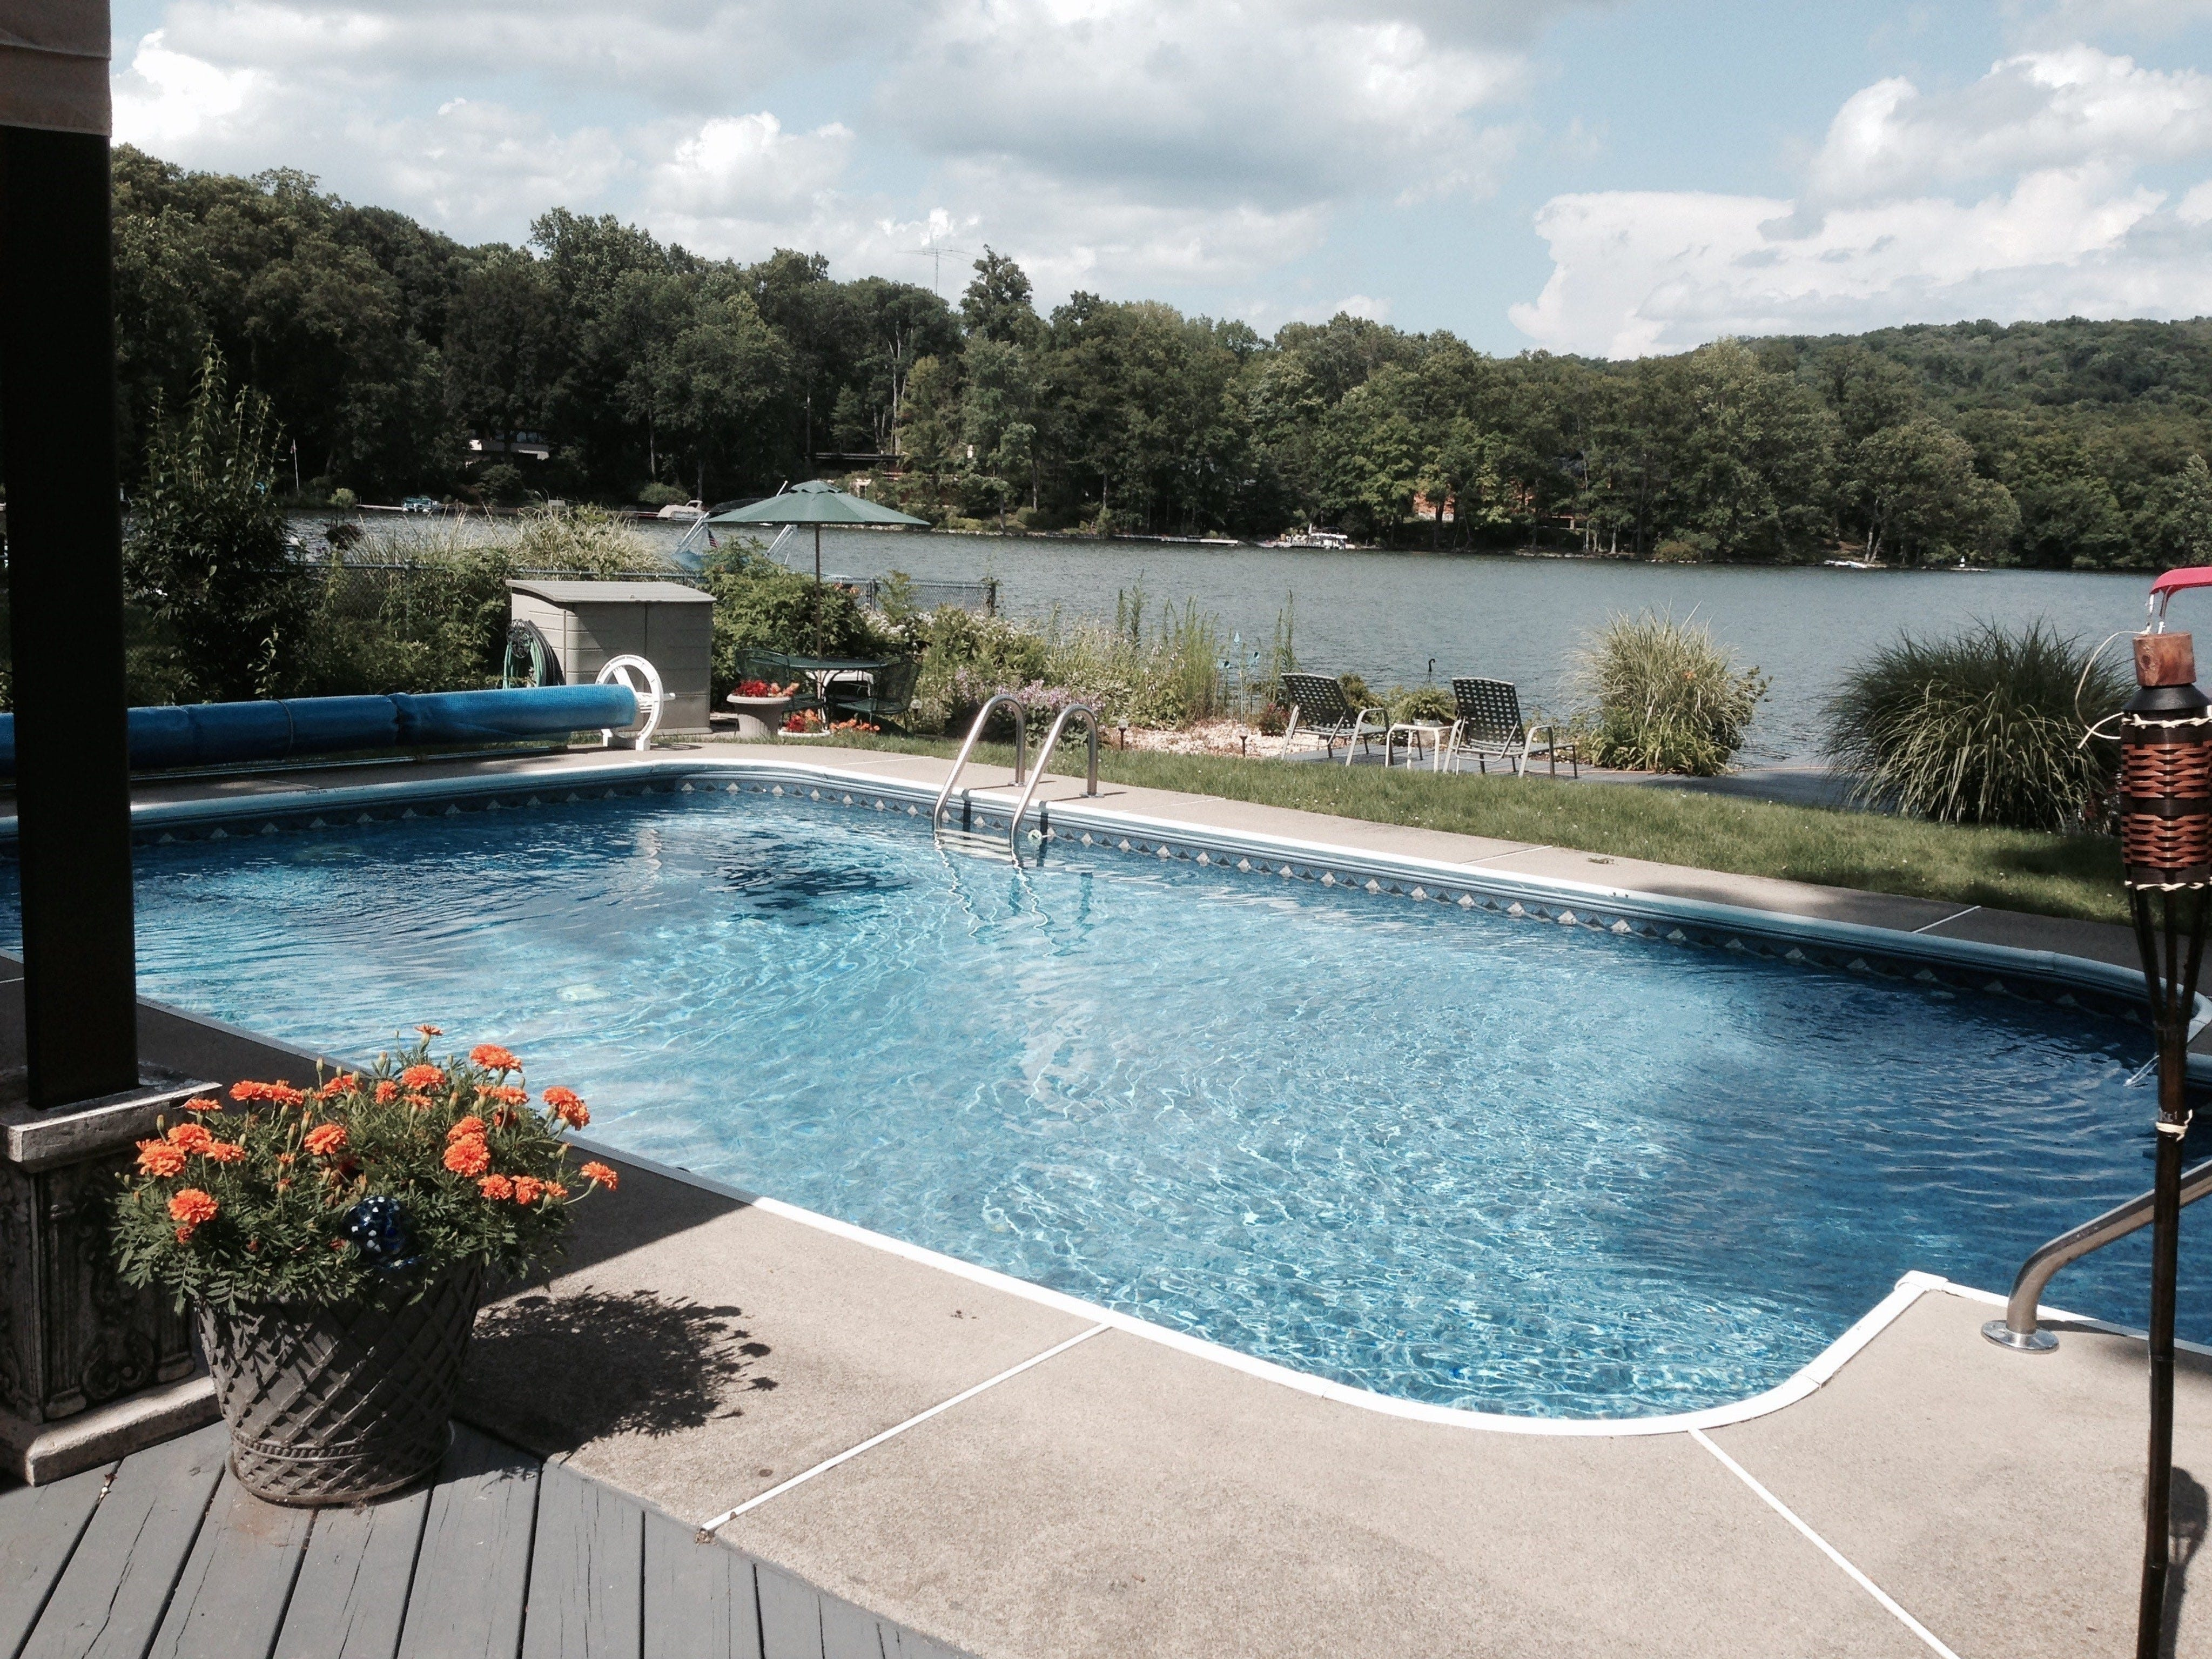 The backyard in-ground pool overlooks the water, and has been the ideal setting for entertaining.